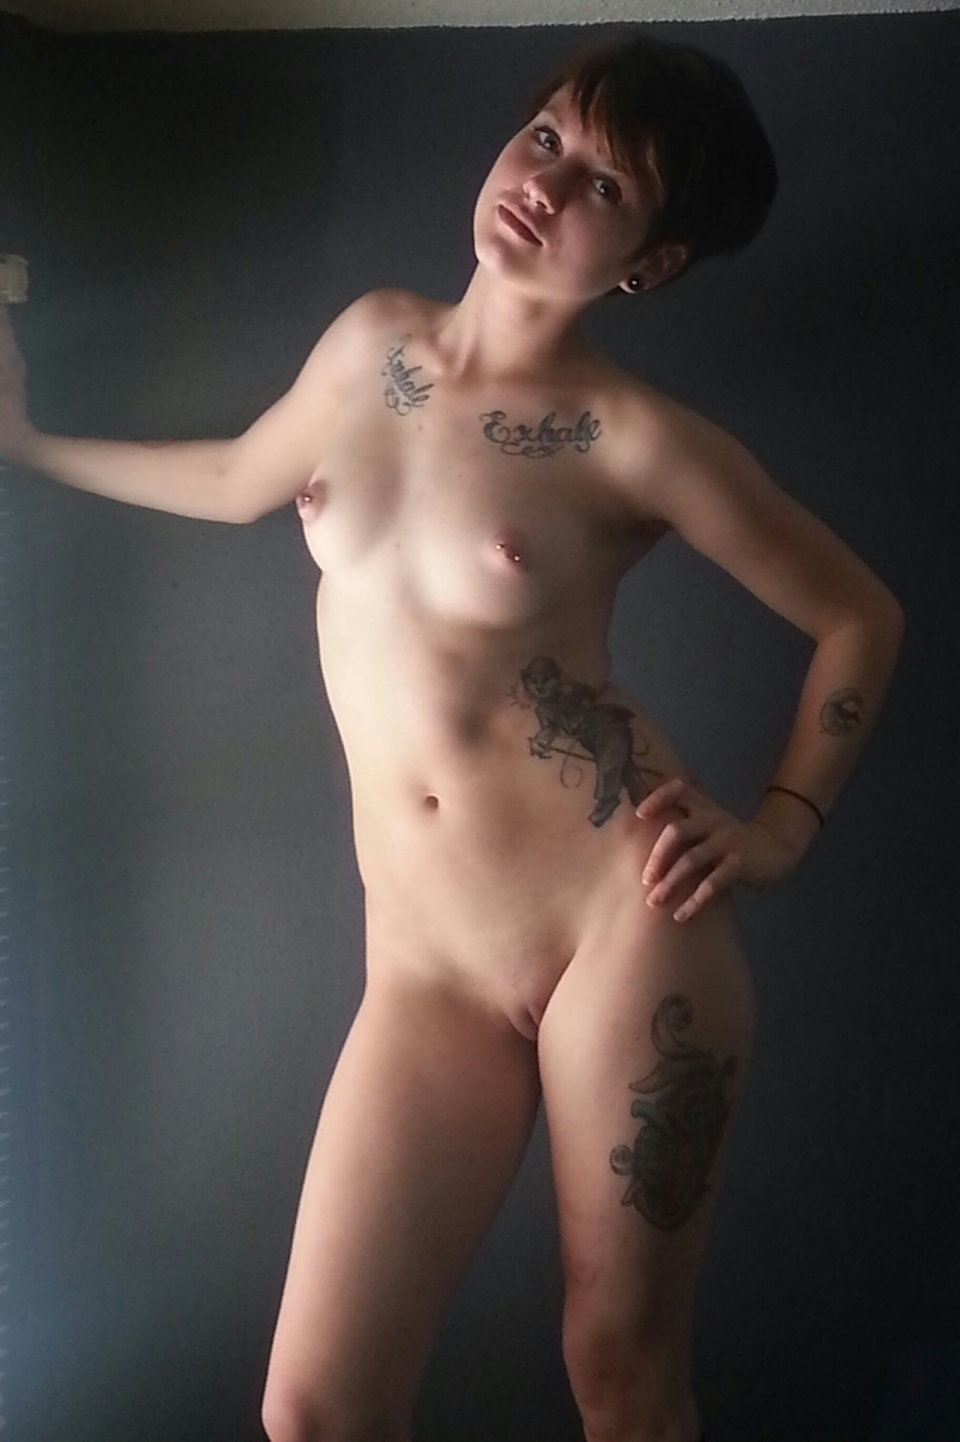 short hair girl naked